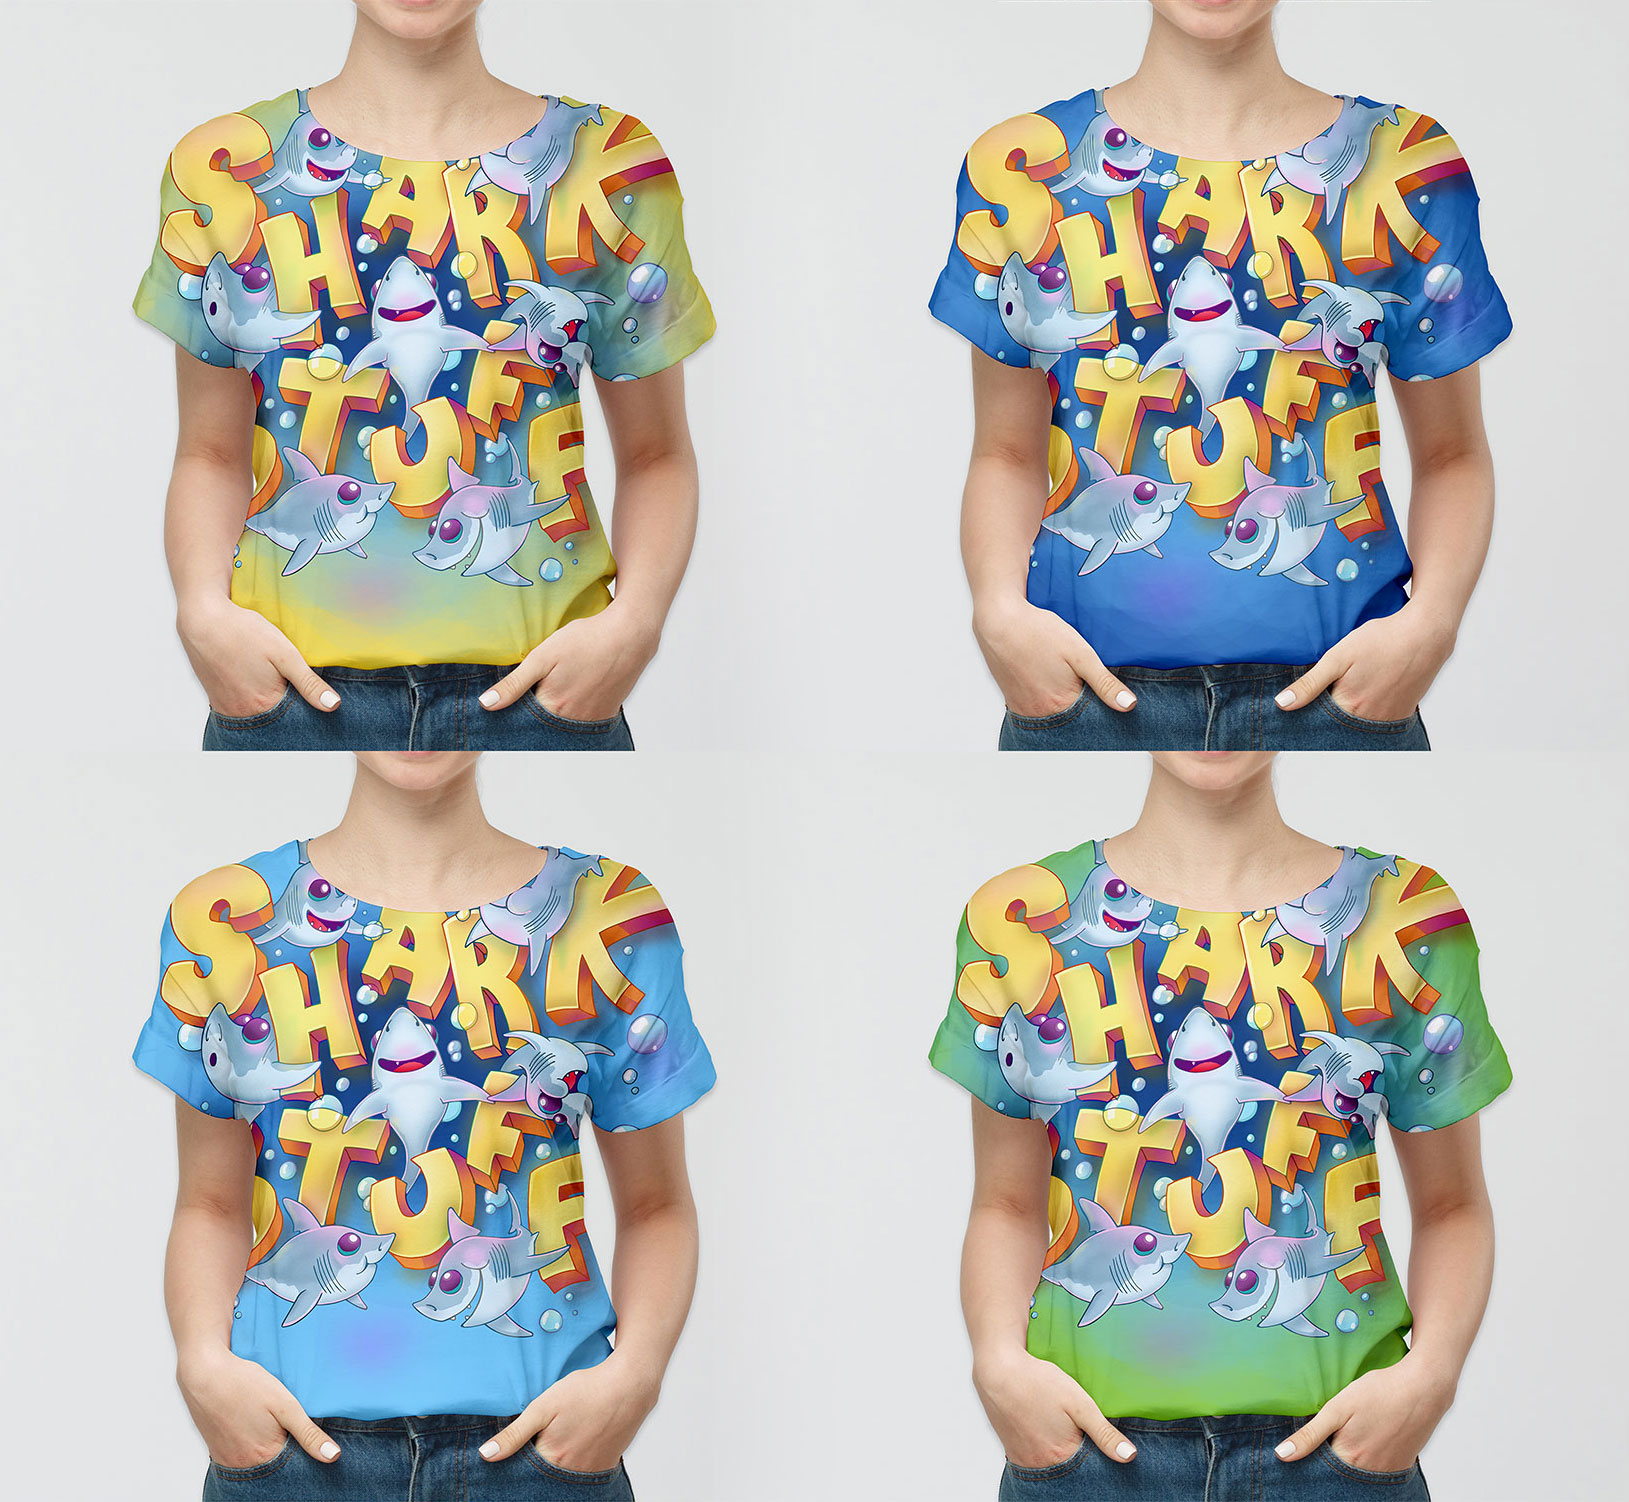 © SharkStuff - Full body T-shirt drafts